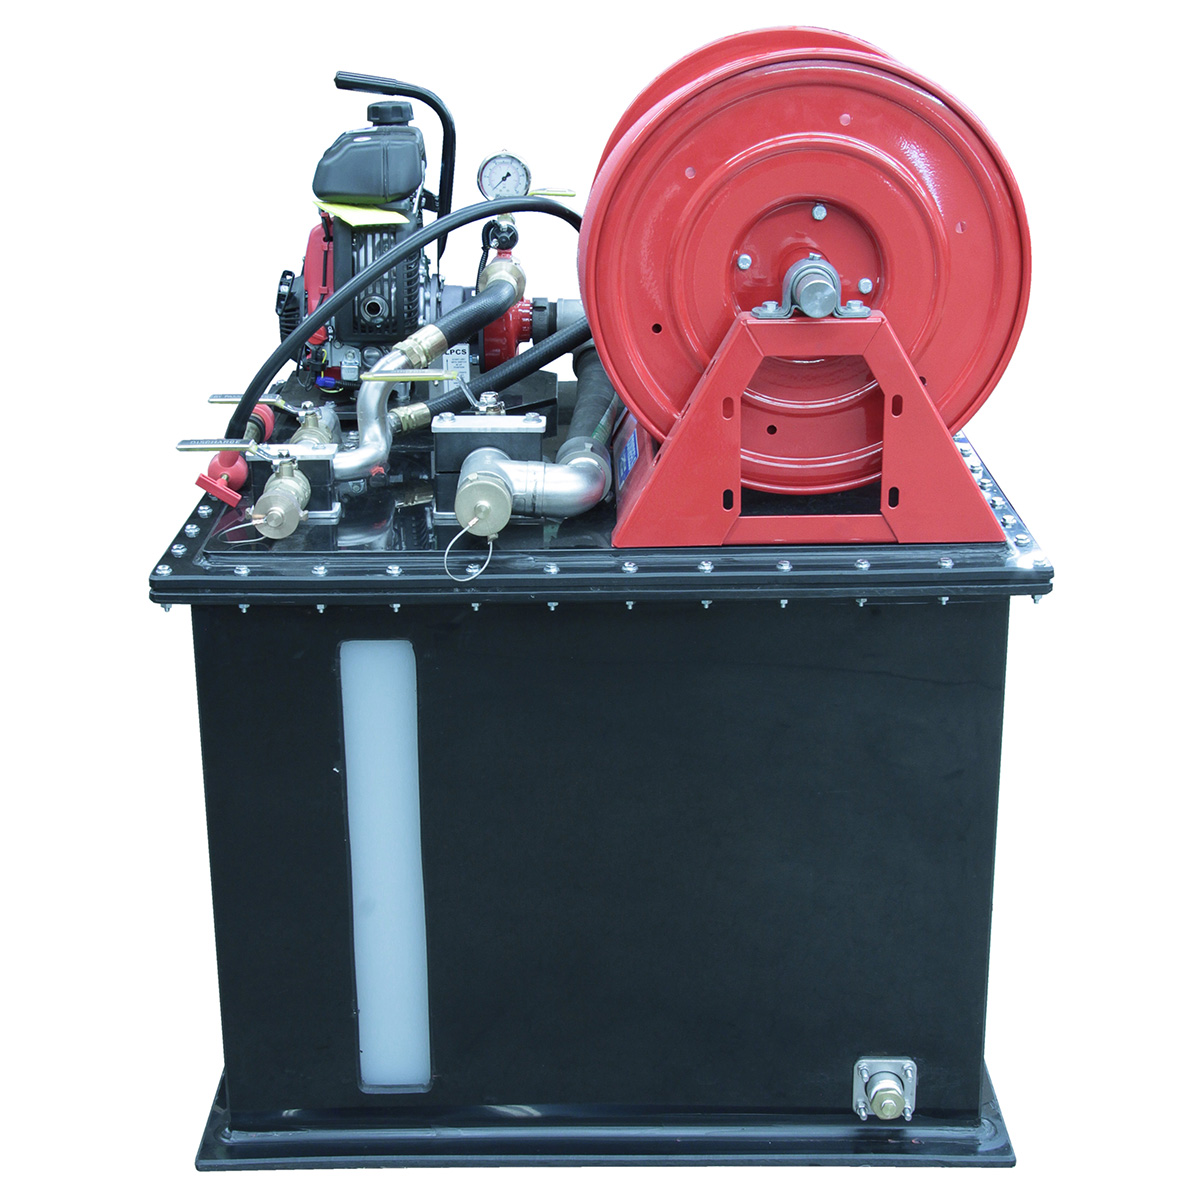 95 gallon UTV Skid Unit - 2 IN STOCK